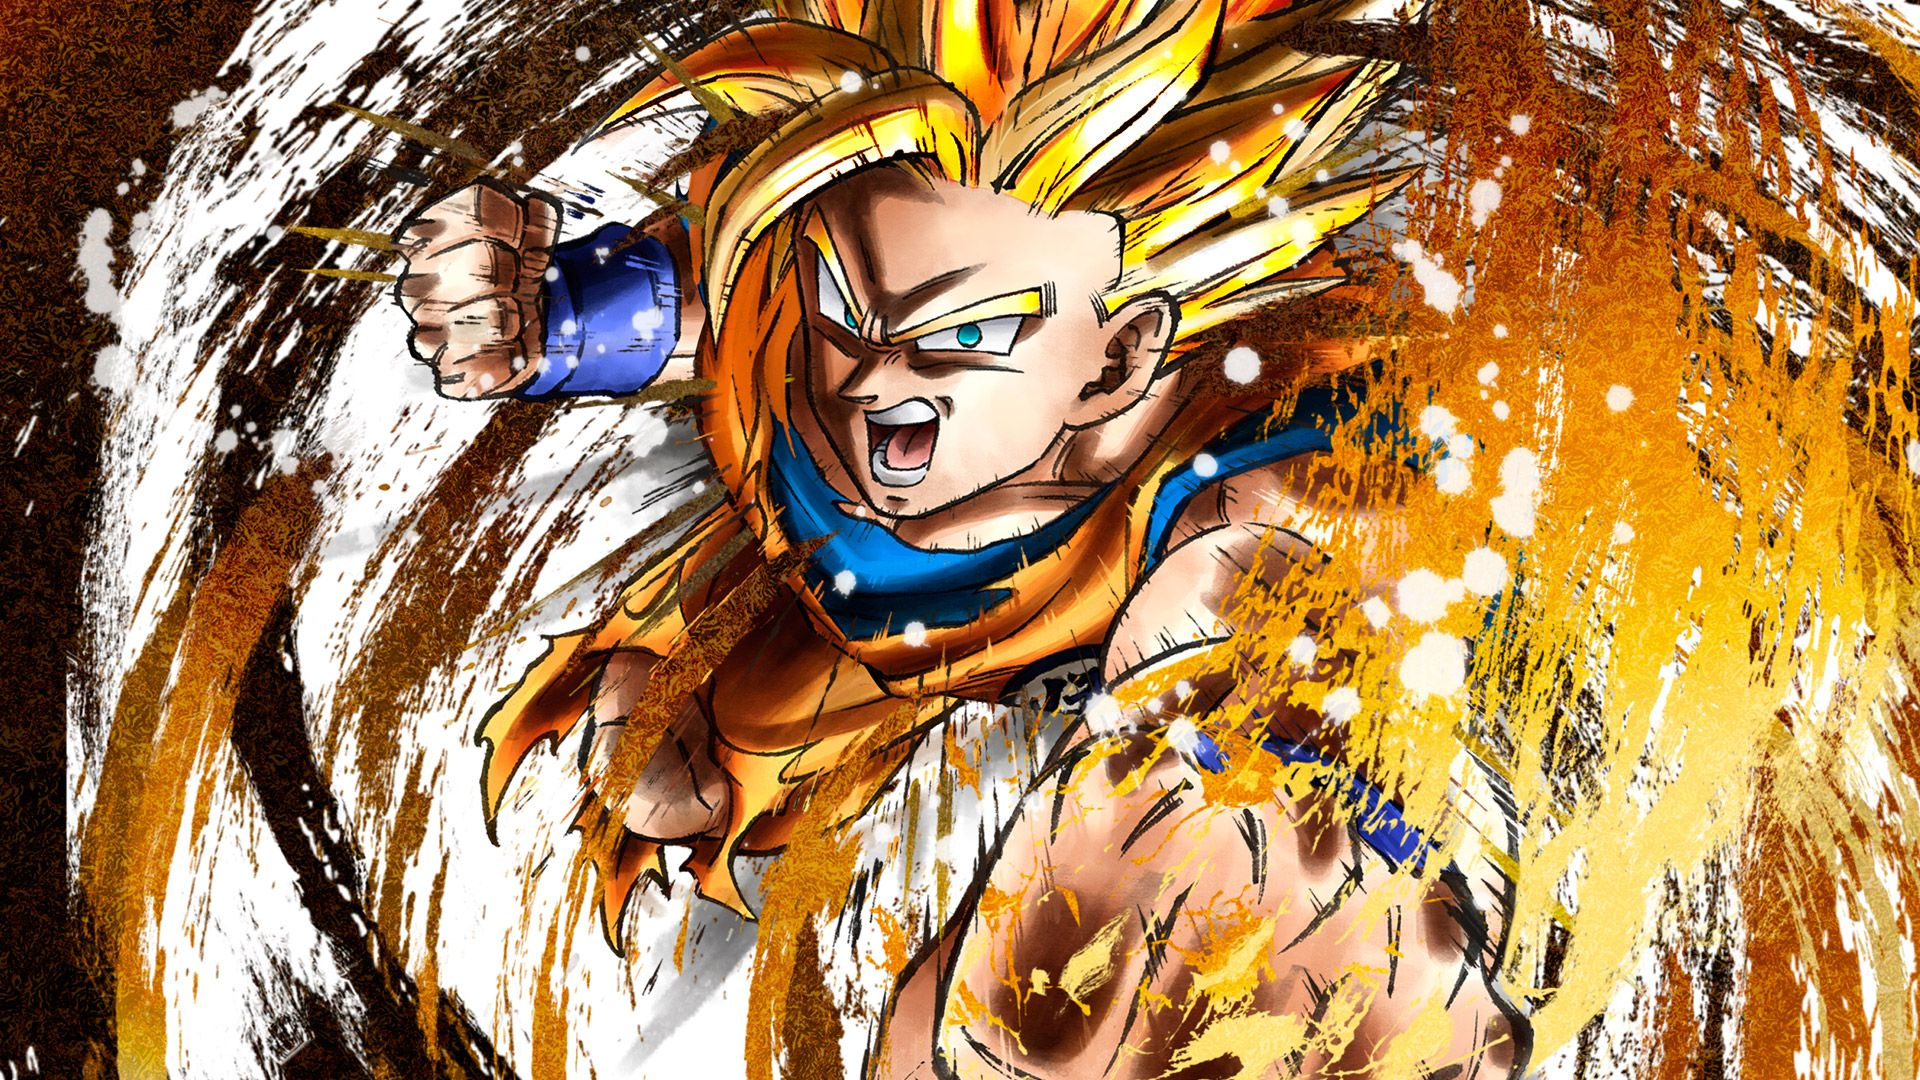 Dbz Xbox Wallpapers Top Free Dbz Xbox Backgrounds Wallpaperaccess